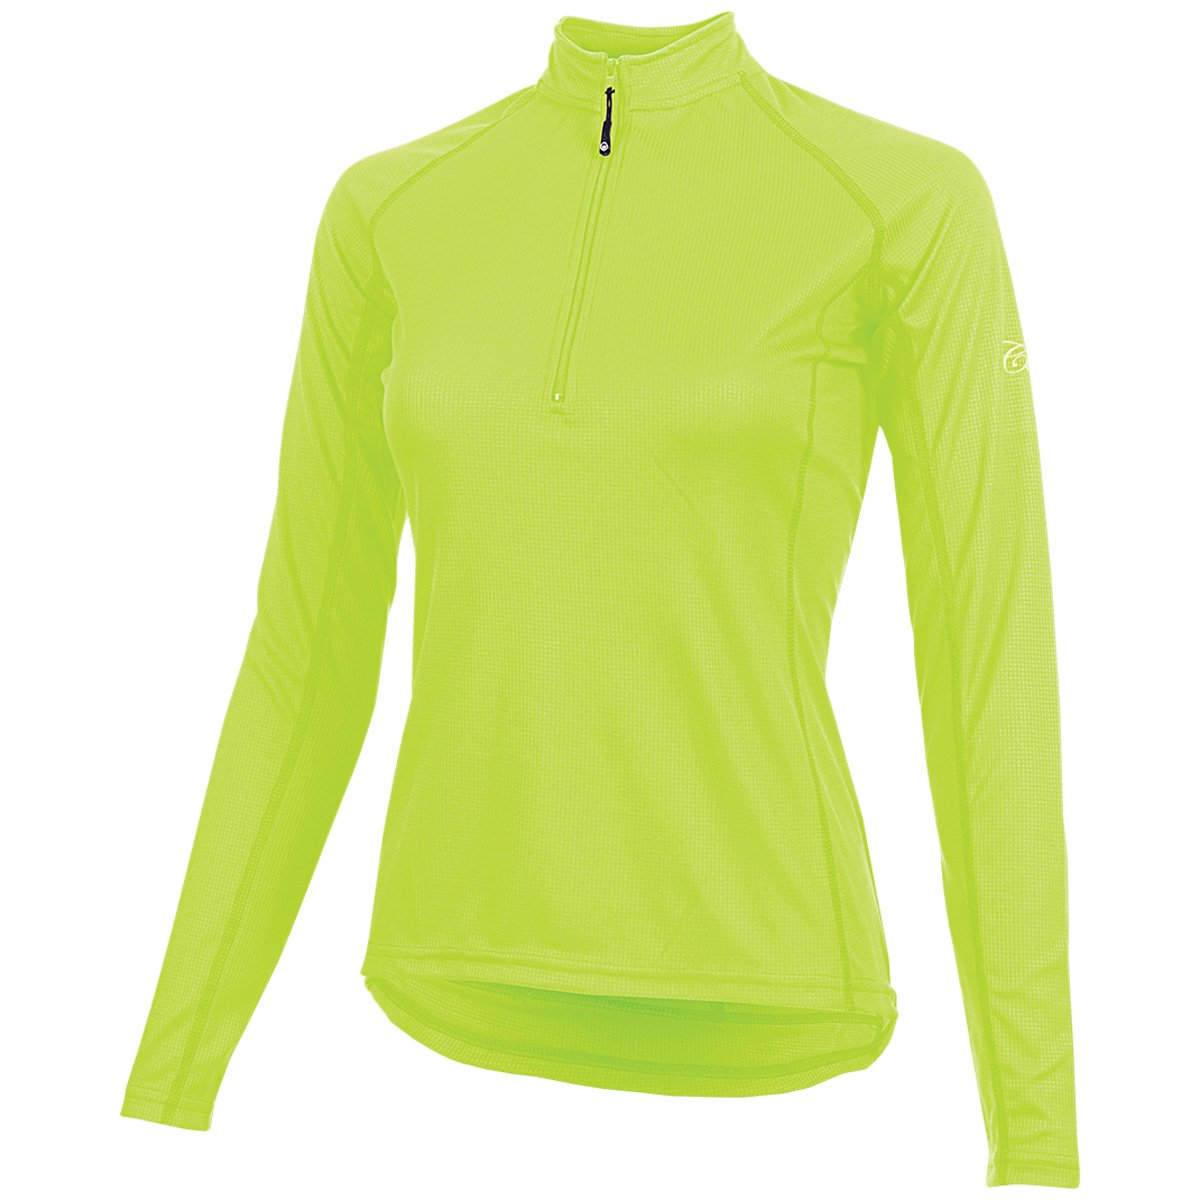 CANARI Women's Optic Nova Long Sleeve Cycling/Biking Jersey